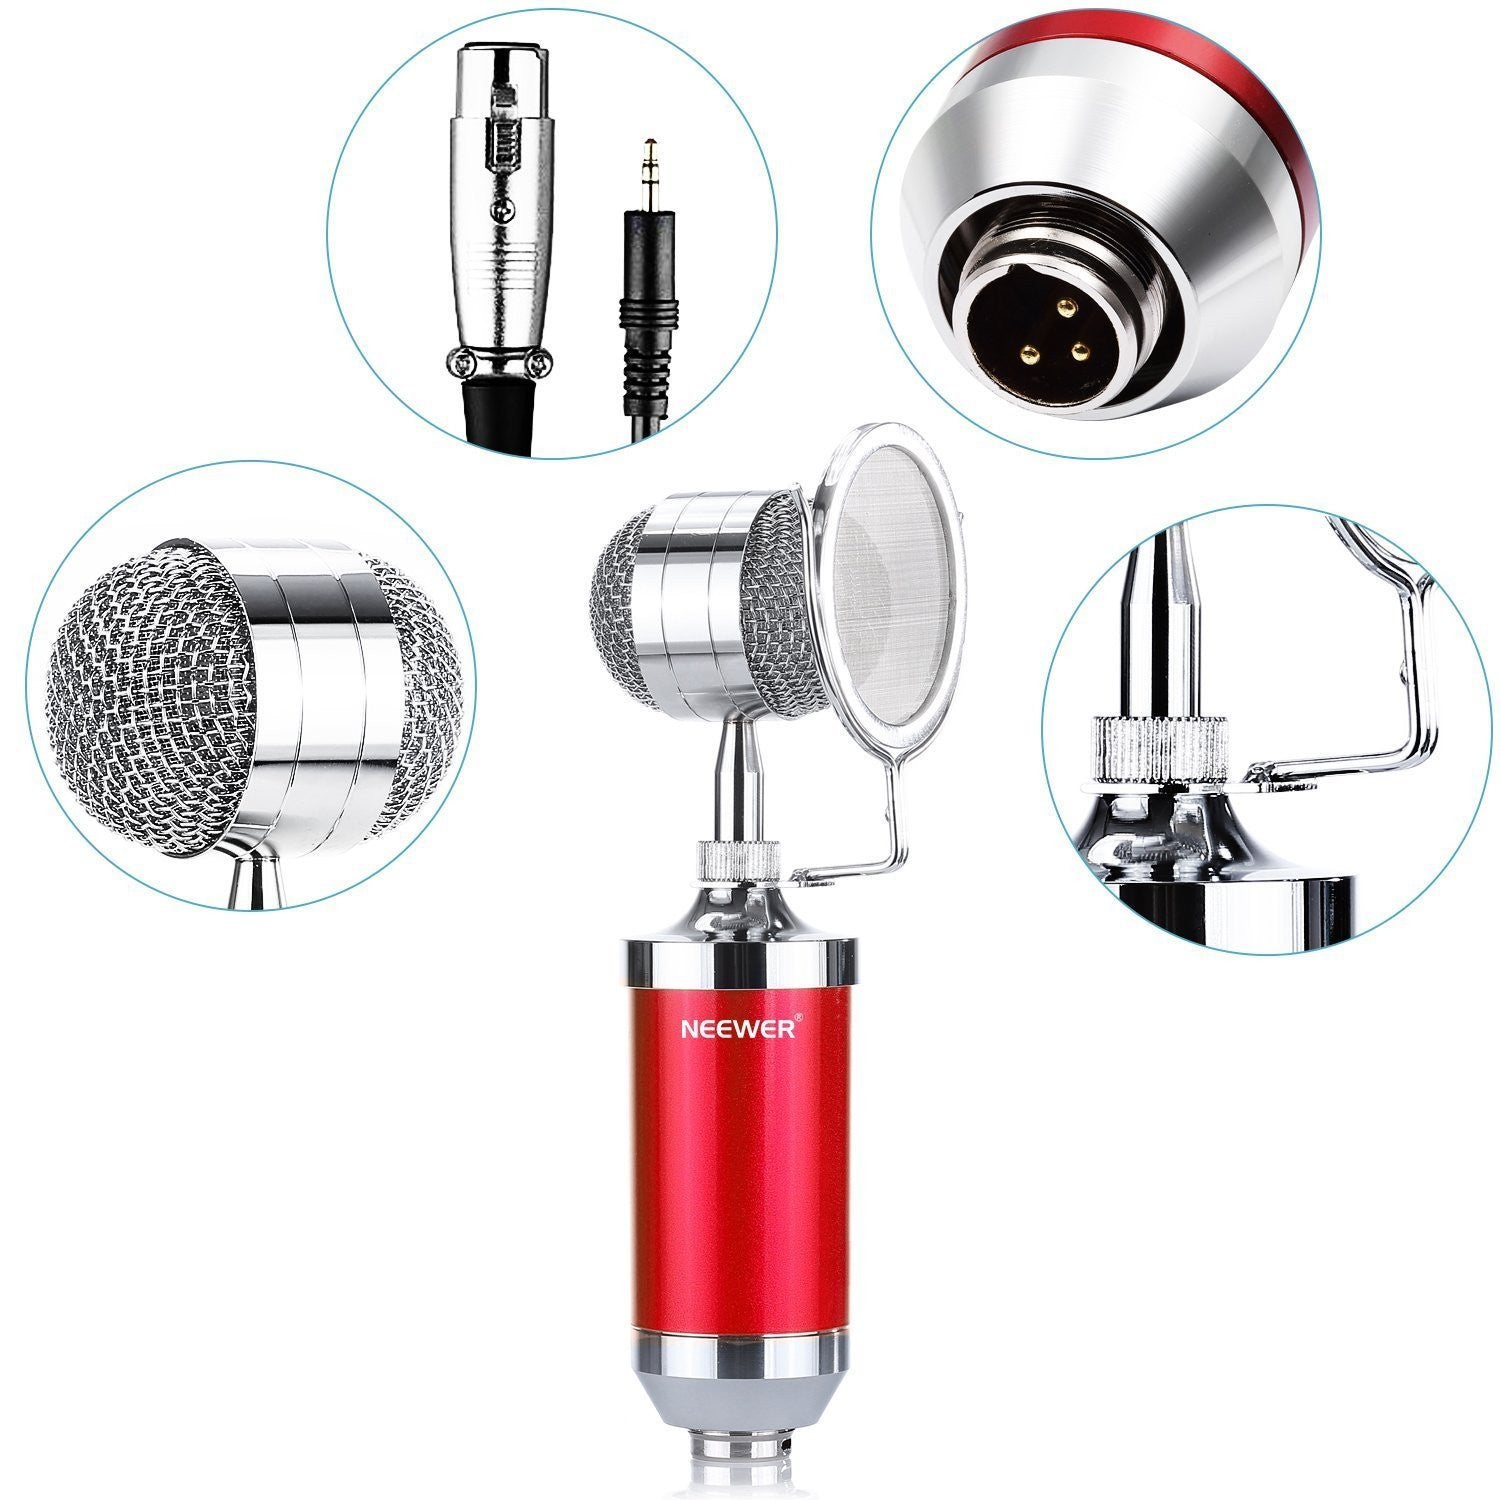 Tanotis - Neewer Cardioid Condenser Broadcasting & Recording Microphone Kit includes: (1)Condenser Microphone with Build-in Pop Filter+(1)Shock Mount +(1)3.5mm Male to XLR Female Microphone Cable(Red)